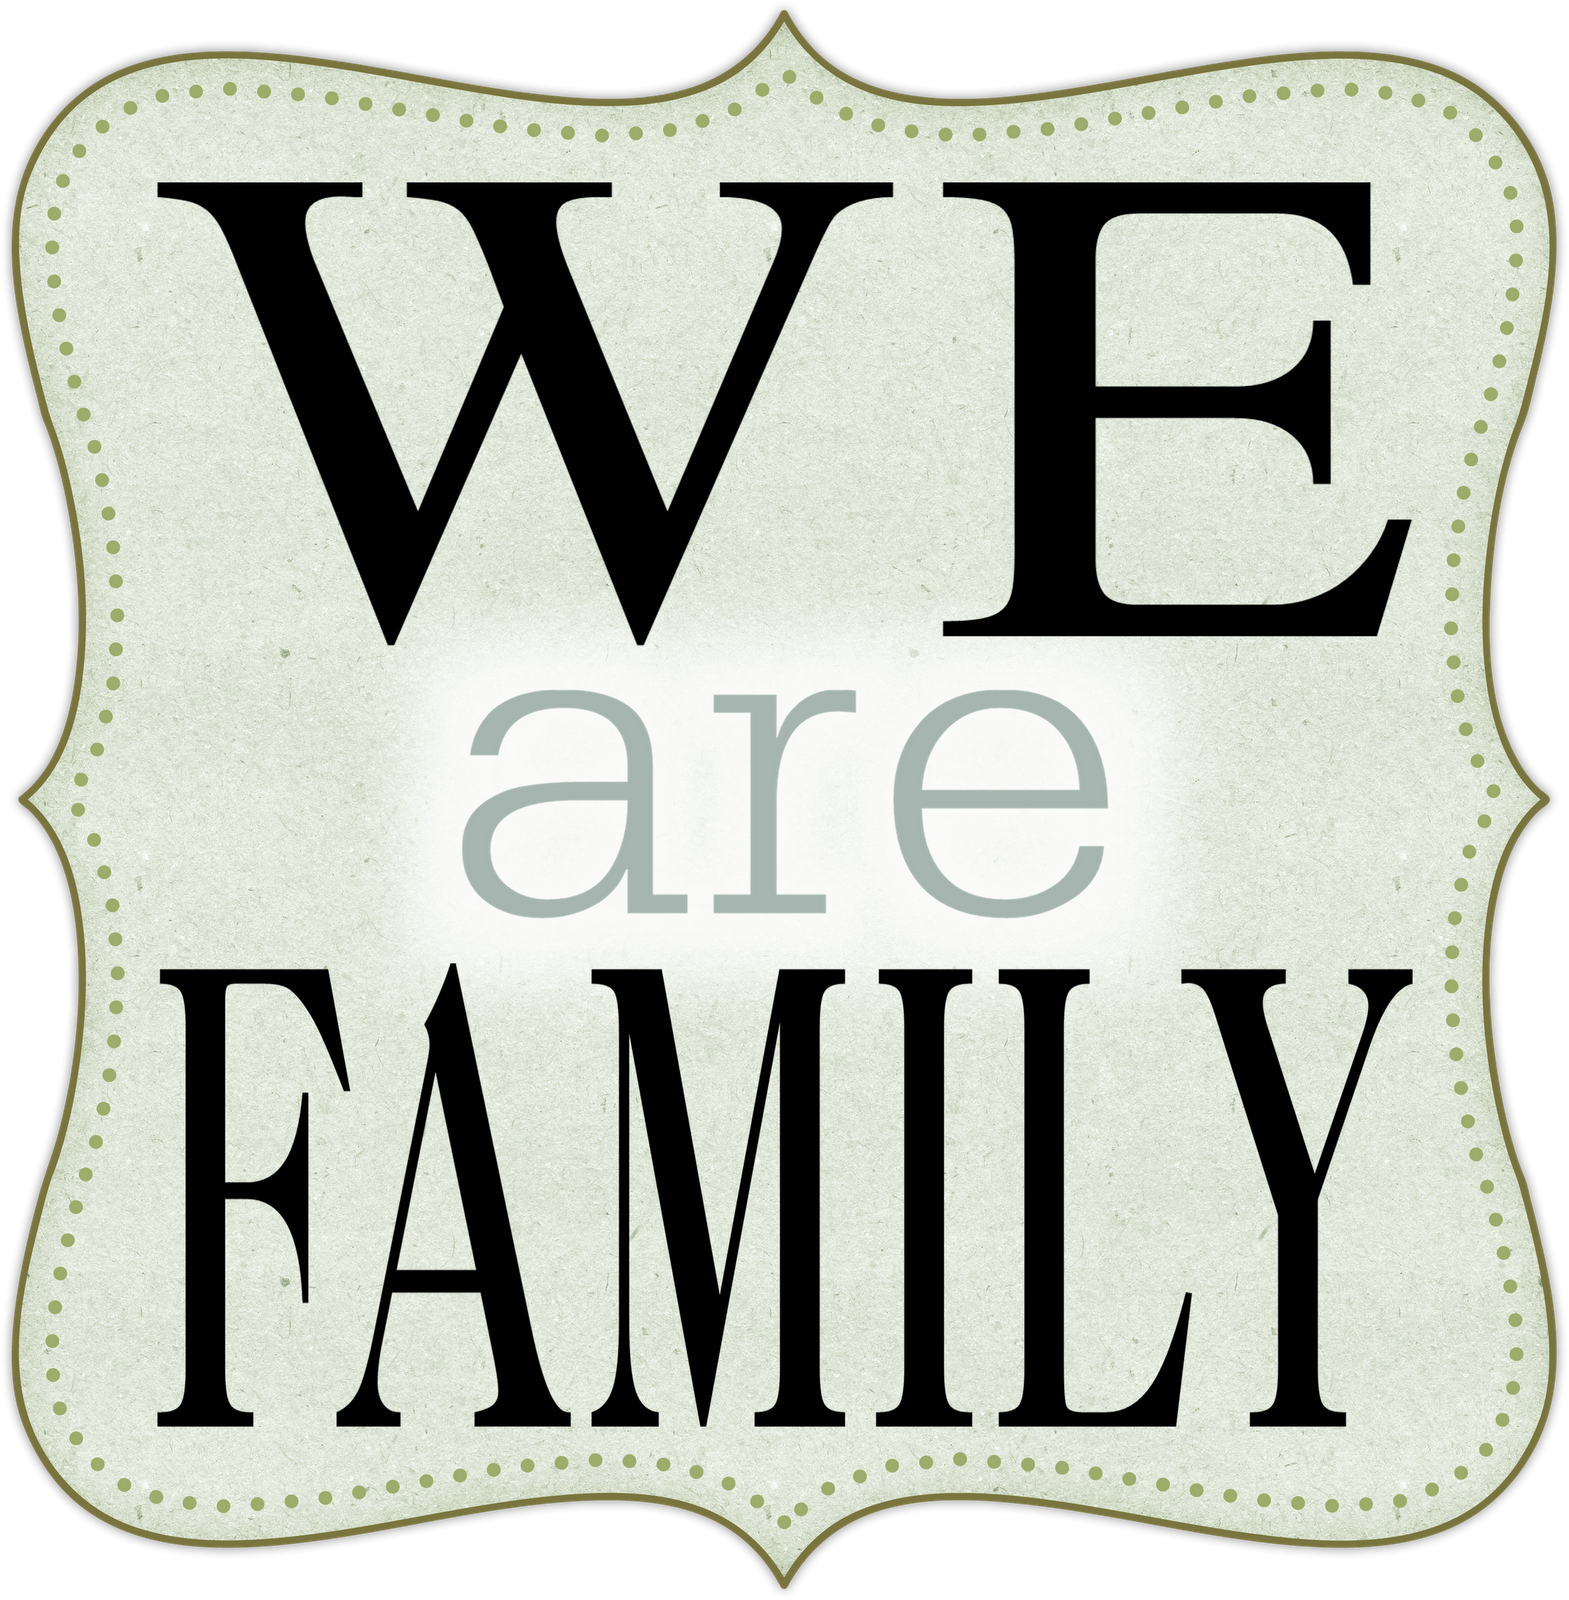 We are family panda. Words clipart dad